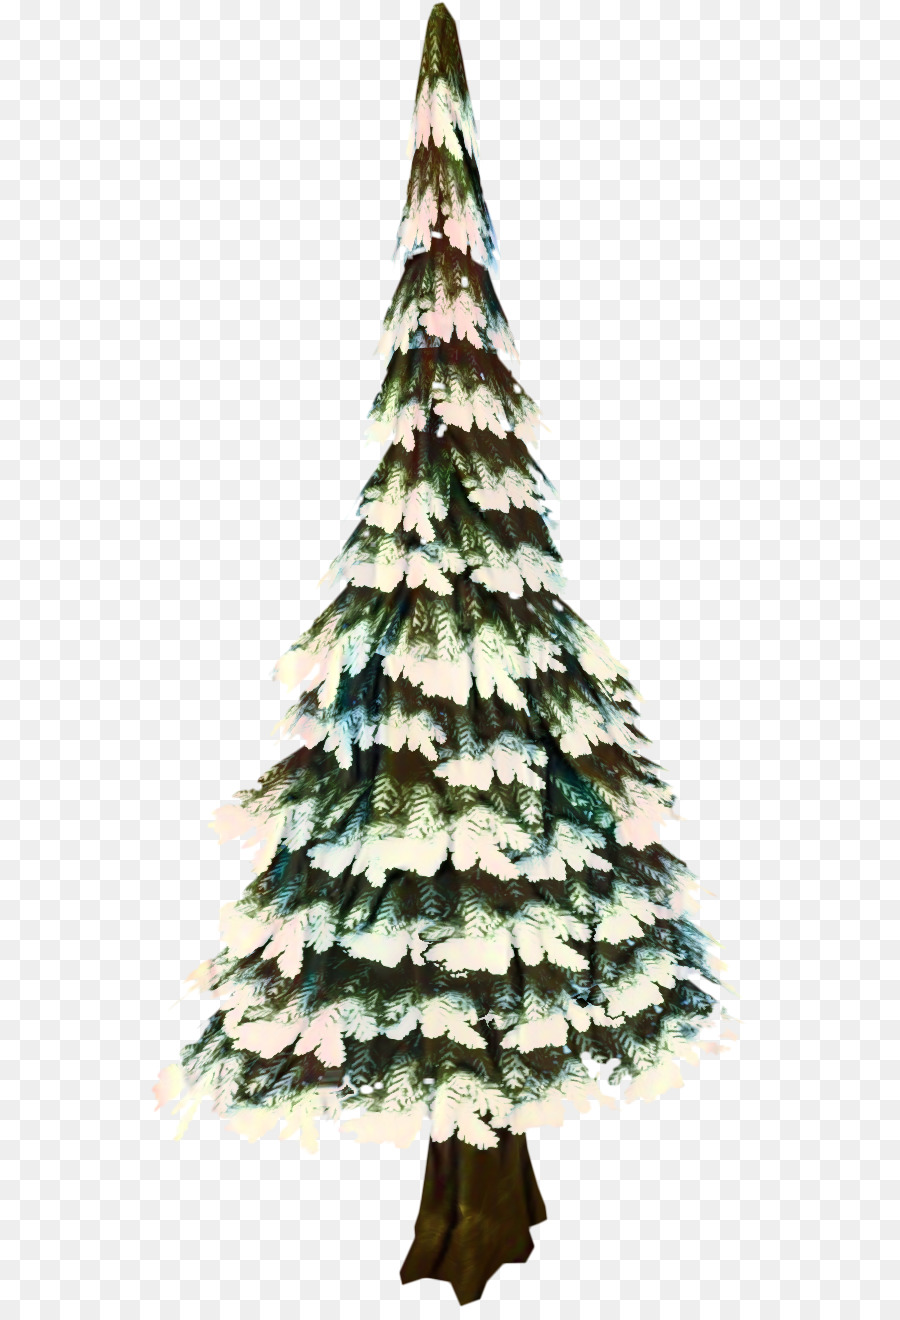 White Christmas Tree Png Transparent.White Christmas Tree Png Download 605 1308 Free